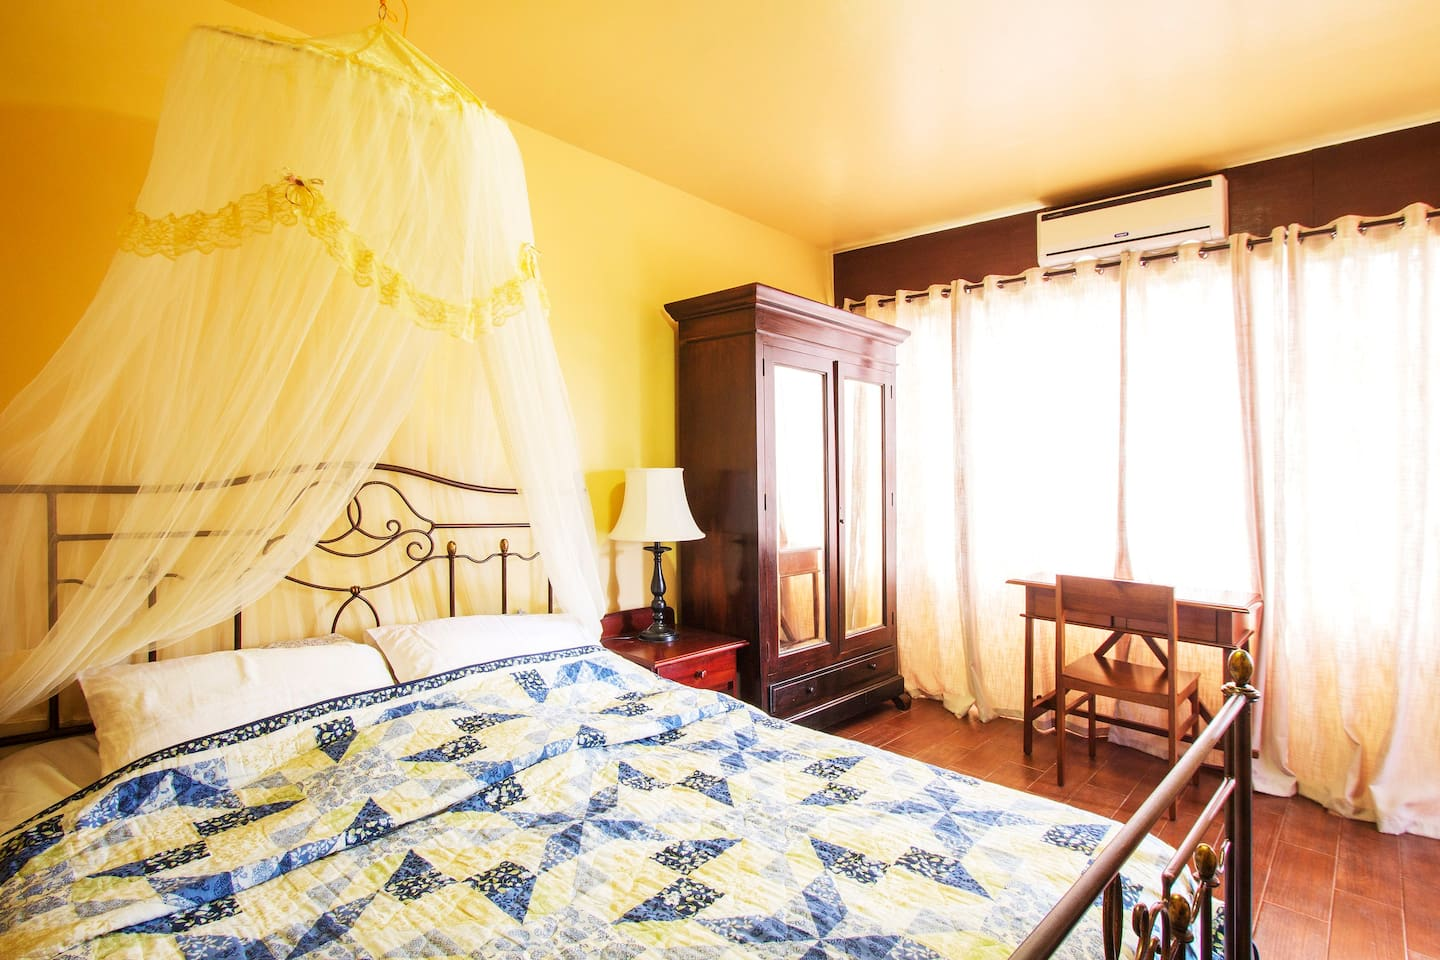 The Garden Room is furnished with a queen-sized bed and an air-conditioning unit.